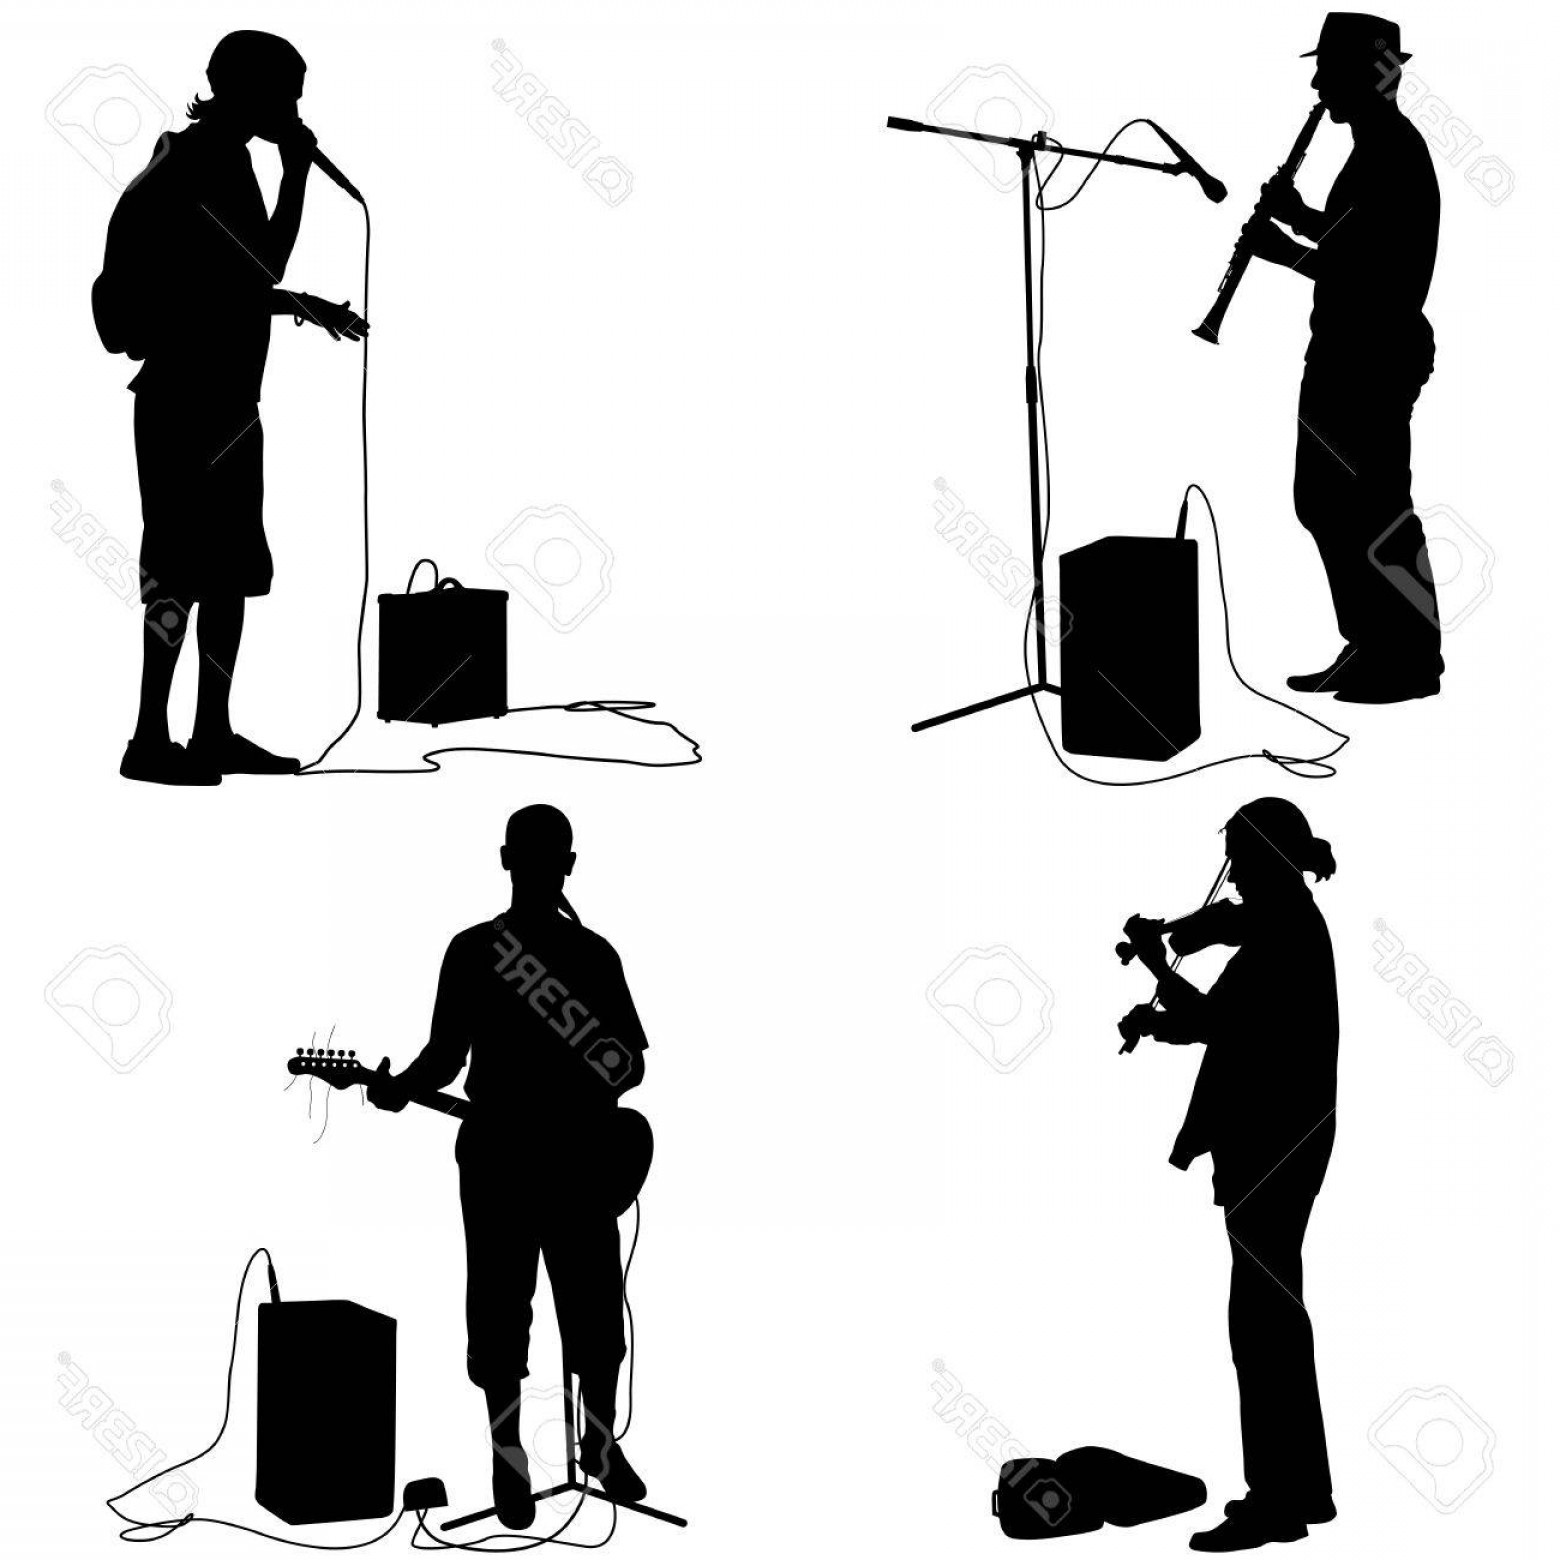 Musician Person Vector: Photostock Vector Set Silhouettes Musicians Playing Musical Instruments Vector Illustration